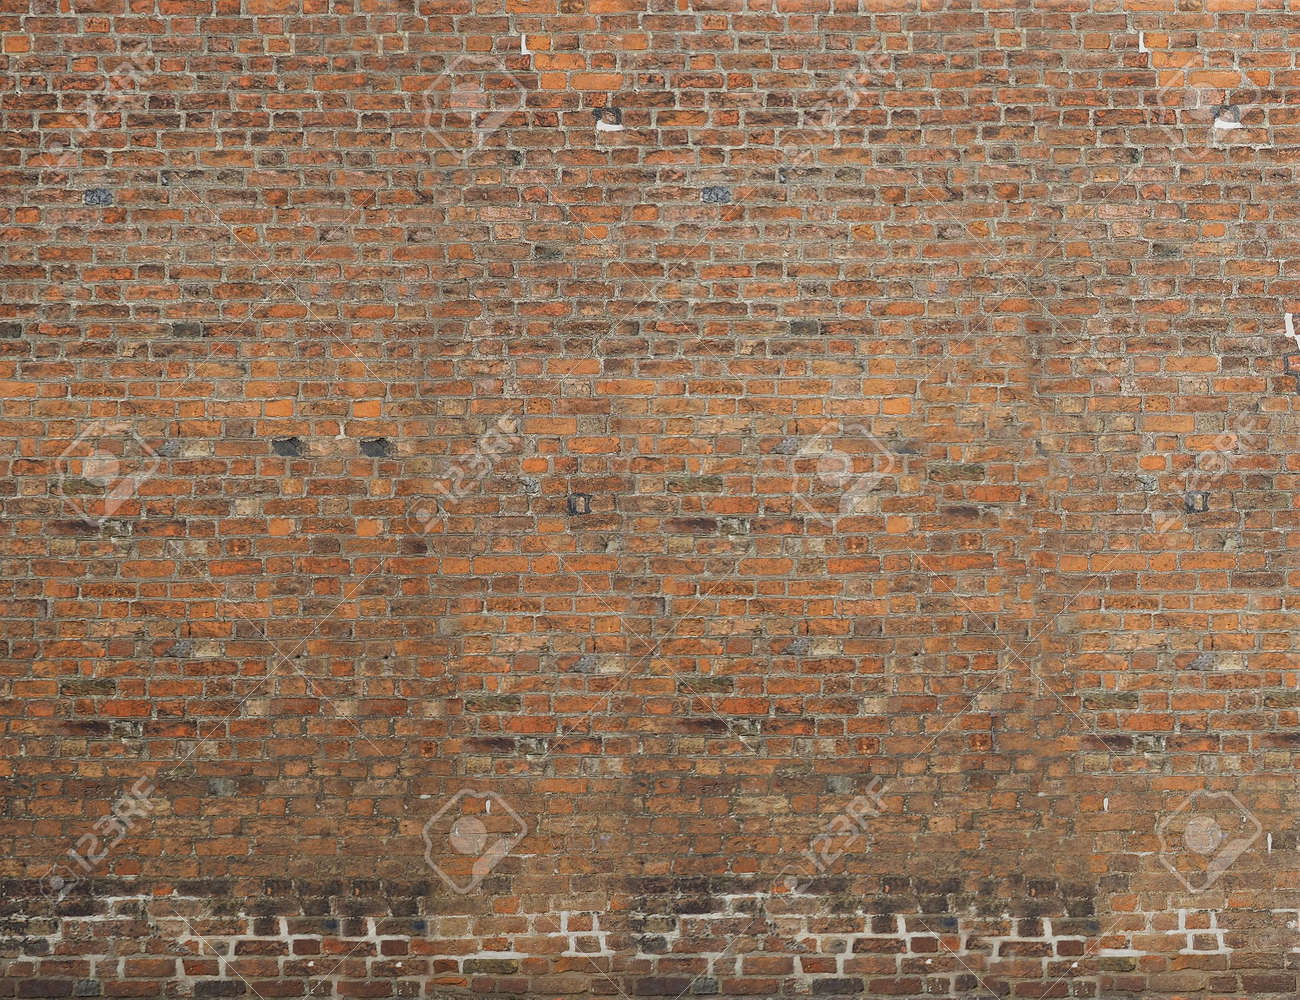 red brick wall useful as a background - 155842862